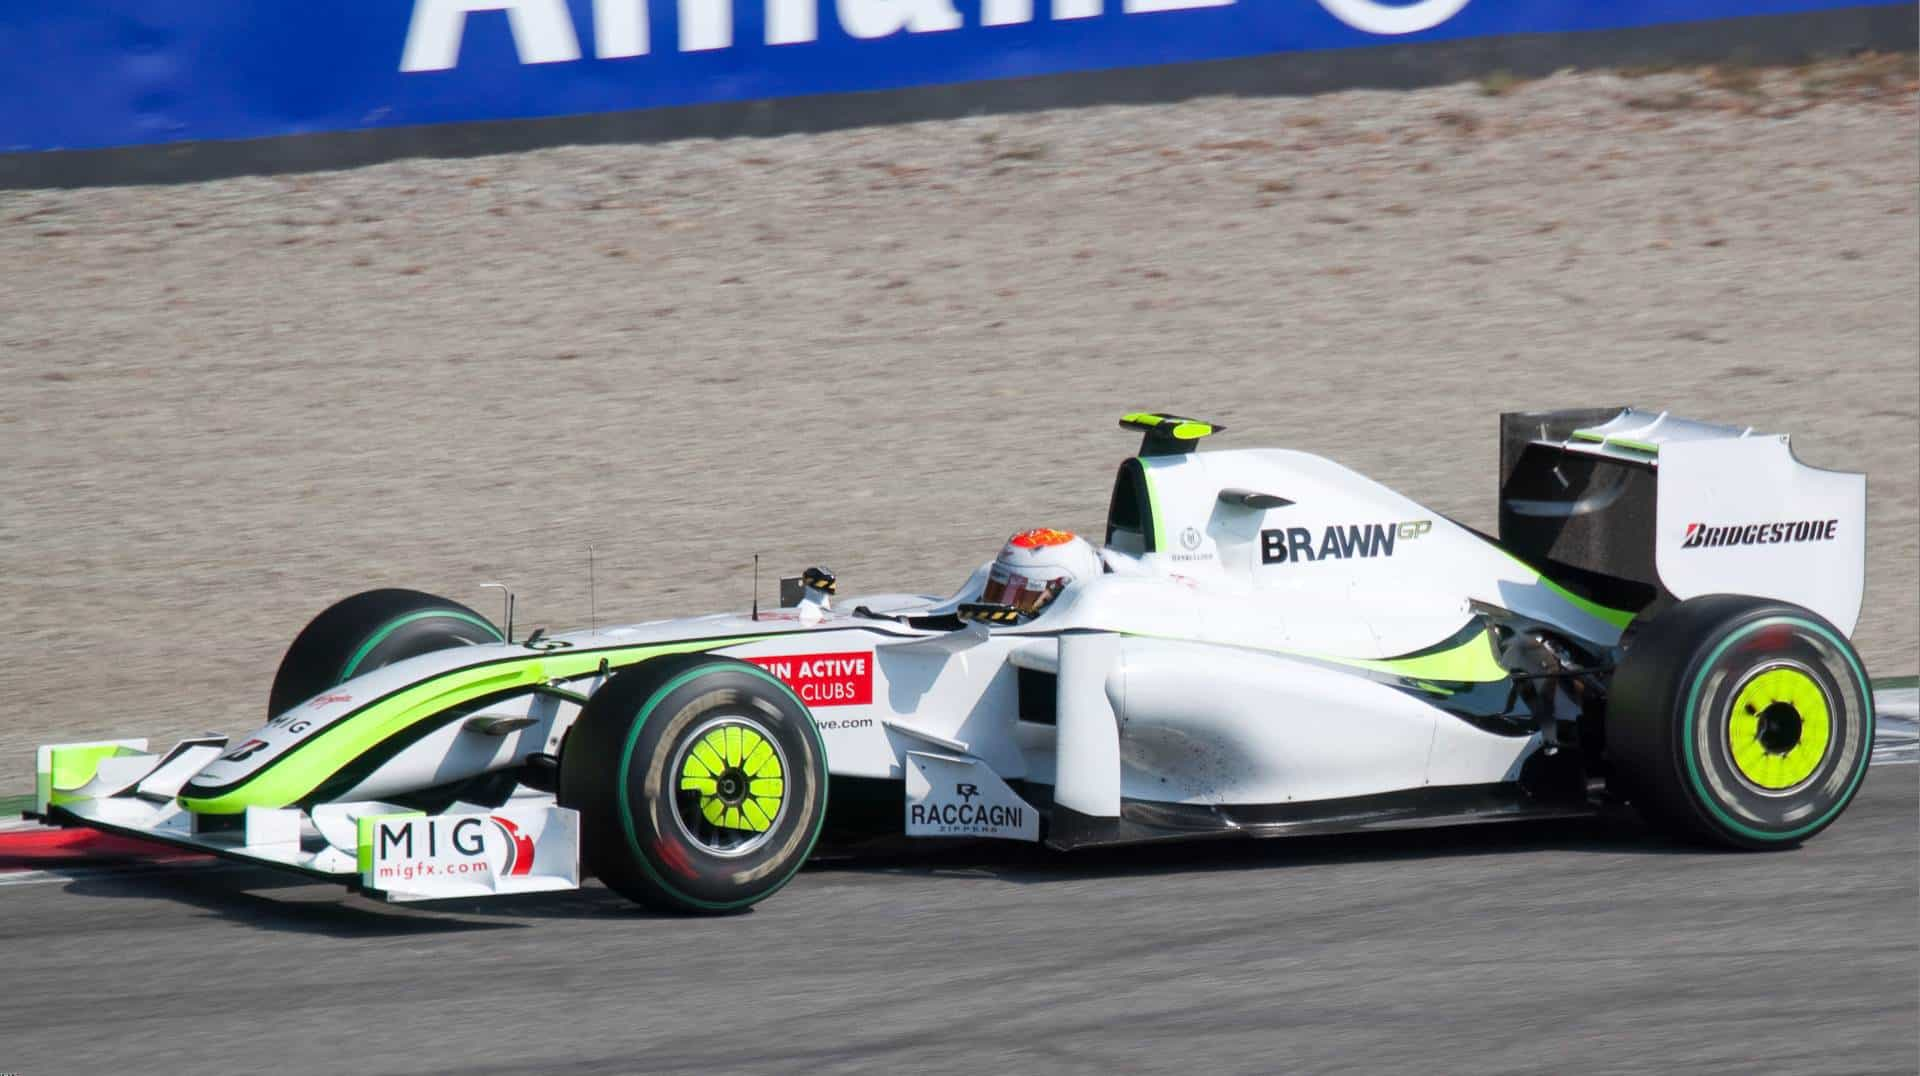 Rubens_Barrichello_2009 Italian GP Monza Brawn GP BGP001 Photo Wikimedia